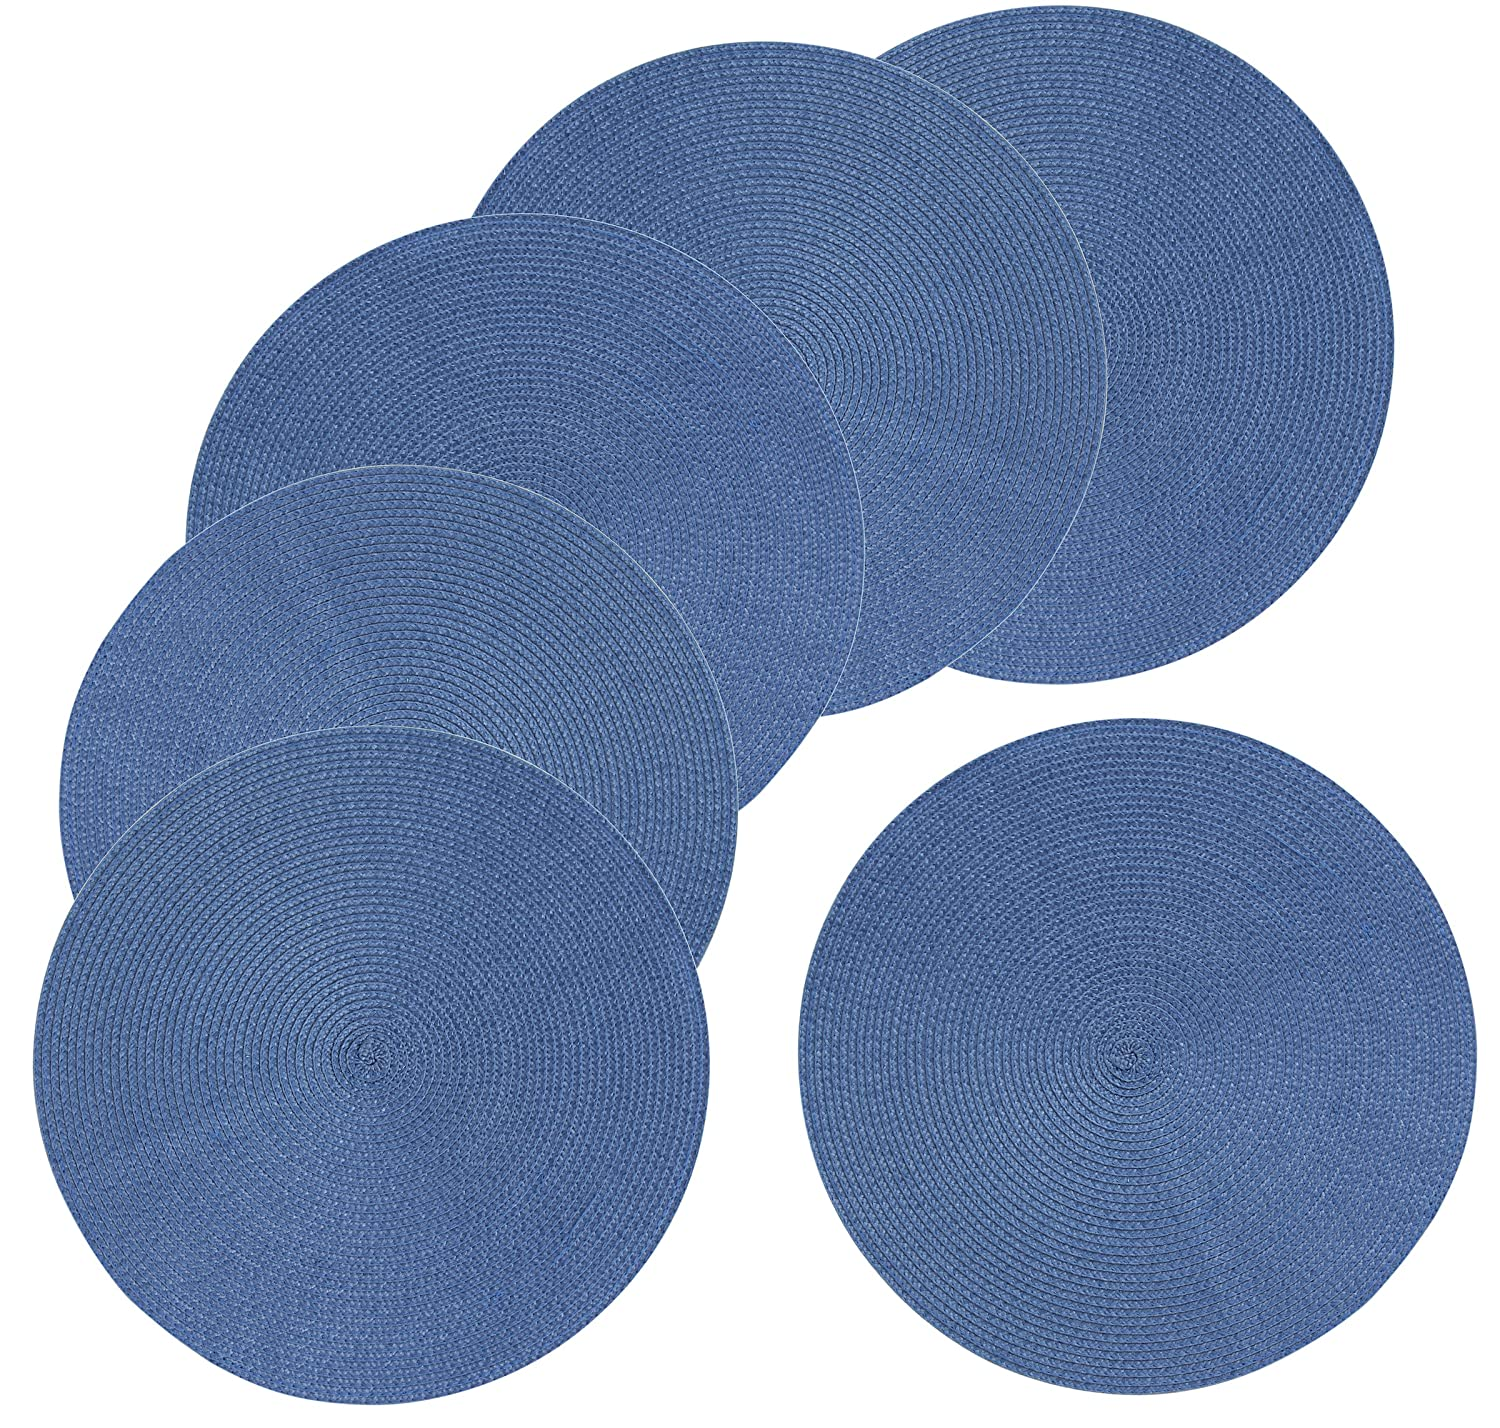 Mainstays 15-Inch Braided Placemat 6-Pack Blue